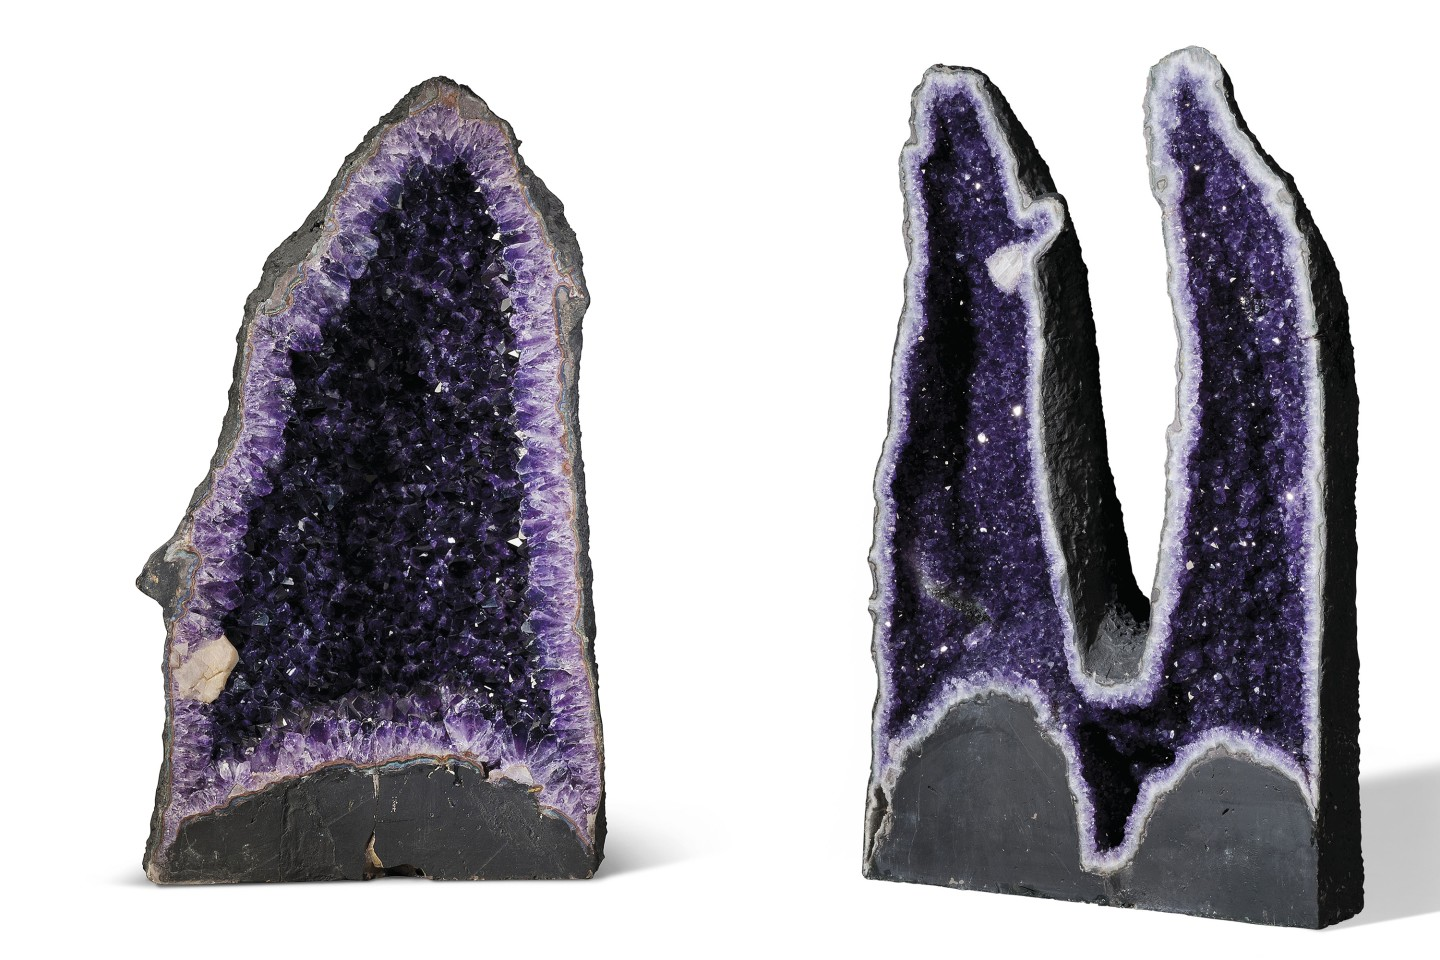 Amethyst Geodes are far from rare, and can be found all over the world within volcanic rocks, though large and beautiful examples command a premium. These two examples are both from the Rio Grande Do Sul region of Brazil, one of the world's most abundant resources of amethyst. They stand 31 inches (78.5 cm) and 34 inches (87 cm) tall respectively.